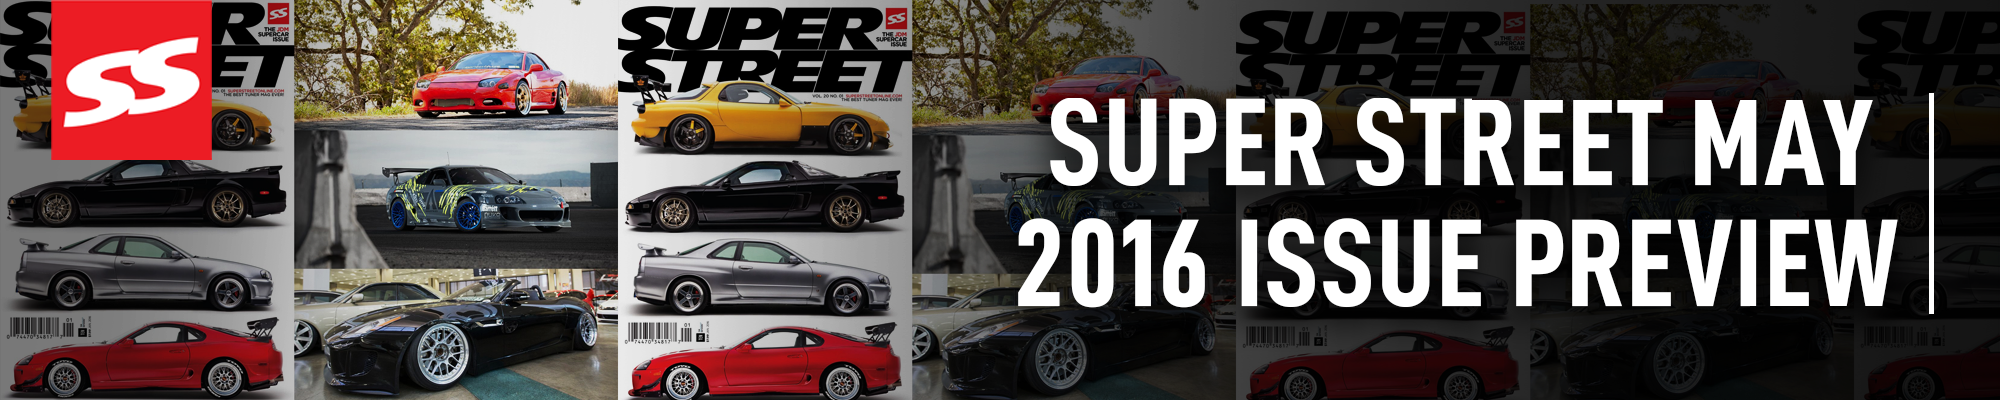 Super Street May 2016 Issue Preview